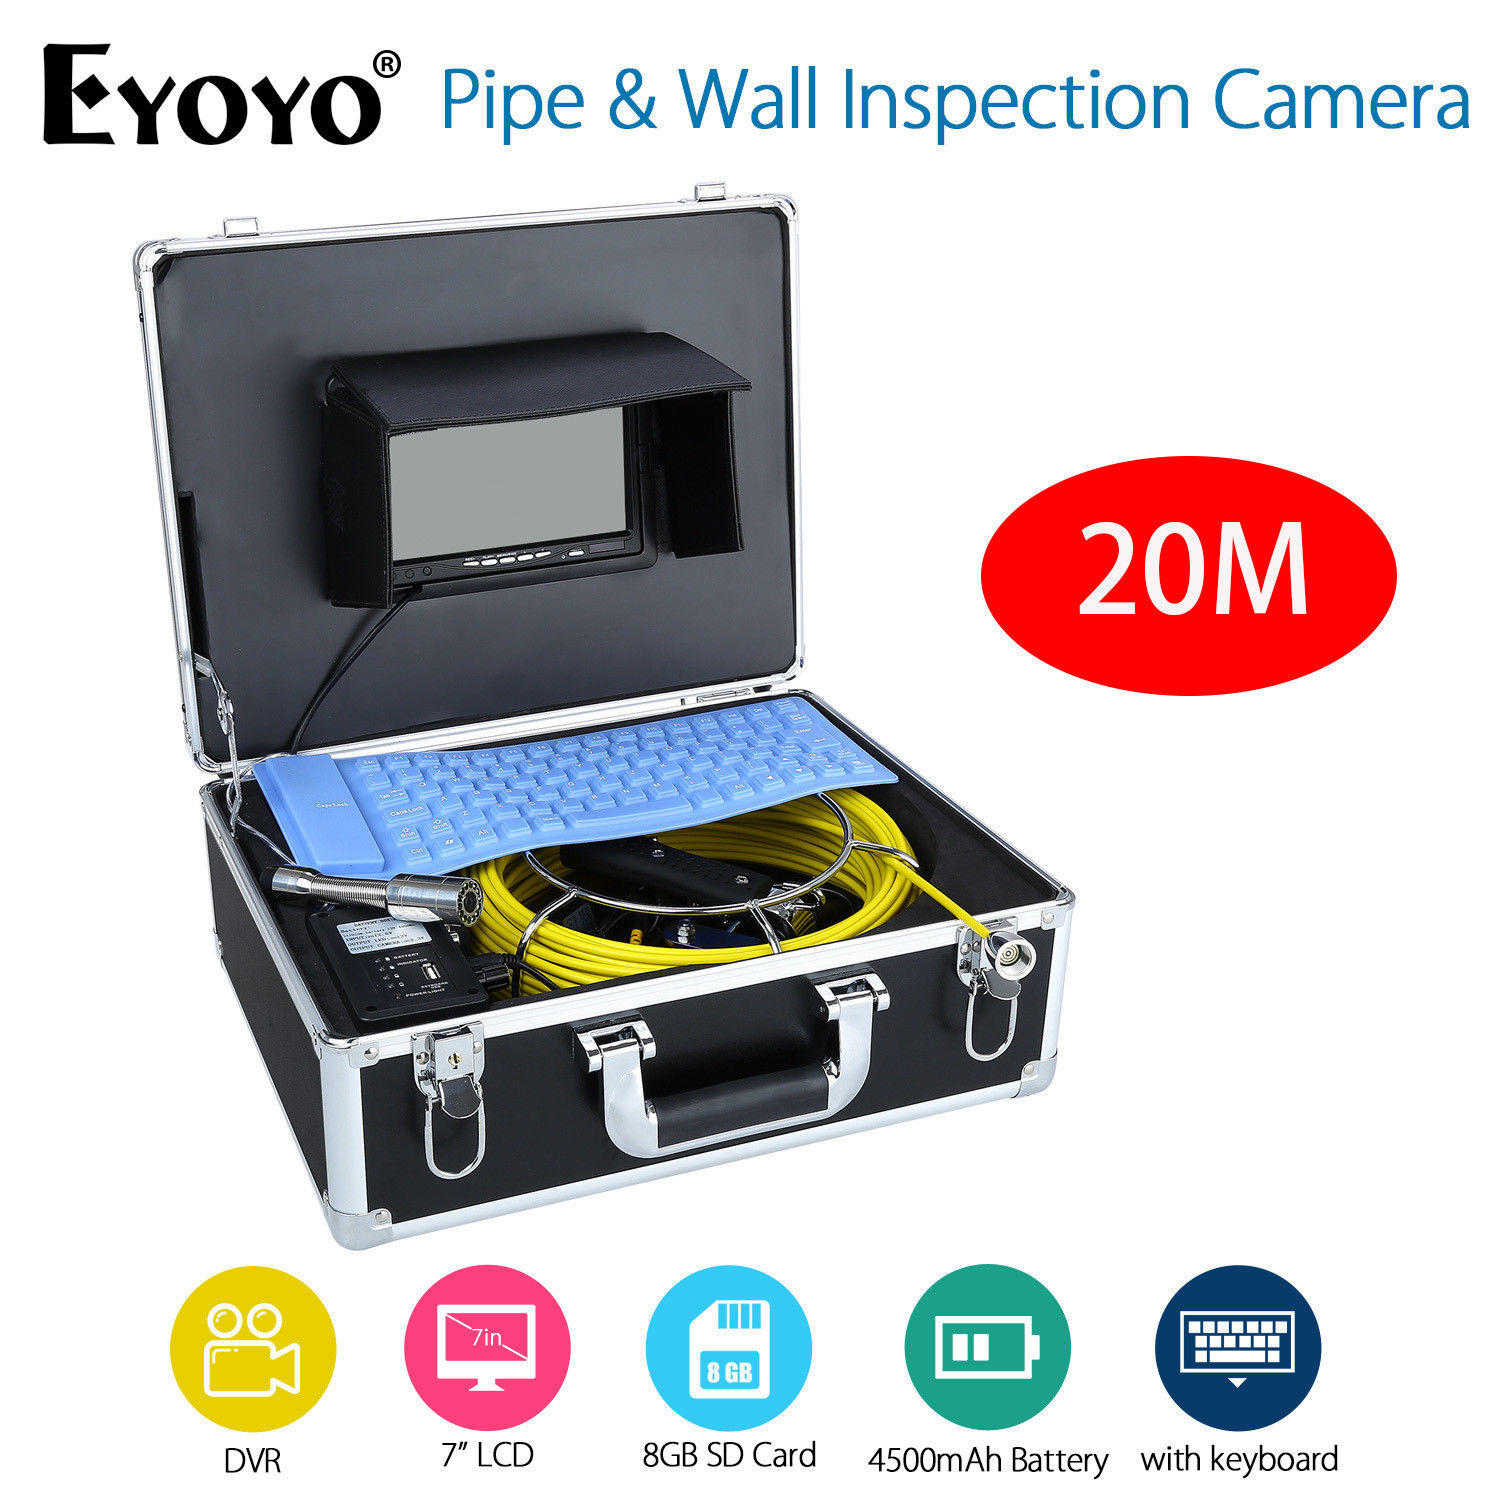 EYOYO 7 LCD Screen 20M Sewer Drain Camera Pipeline&Wall Drain Inspection Endoscope With Keyboard DVR Recording 1000TVL 8GB eyoyo 30m 7 lcd monitor pipe wall video inspection sewer drain camera pipeline snake cam dvr 6600mah battery with usb port